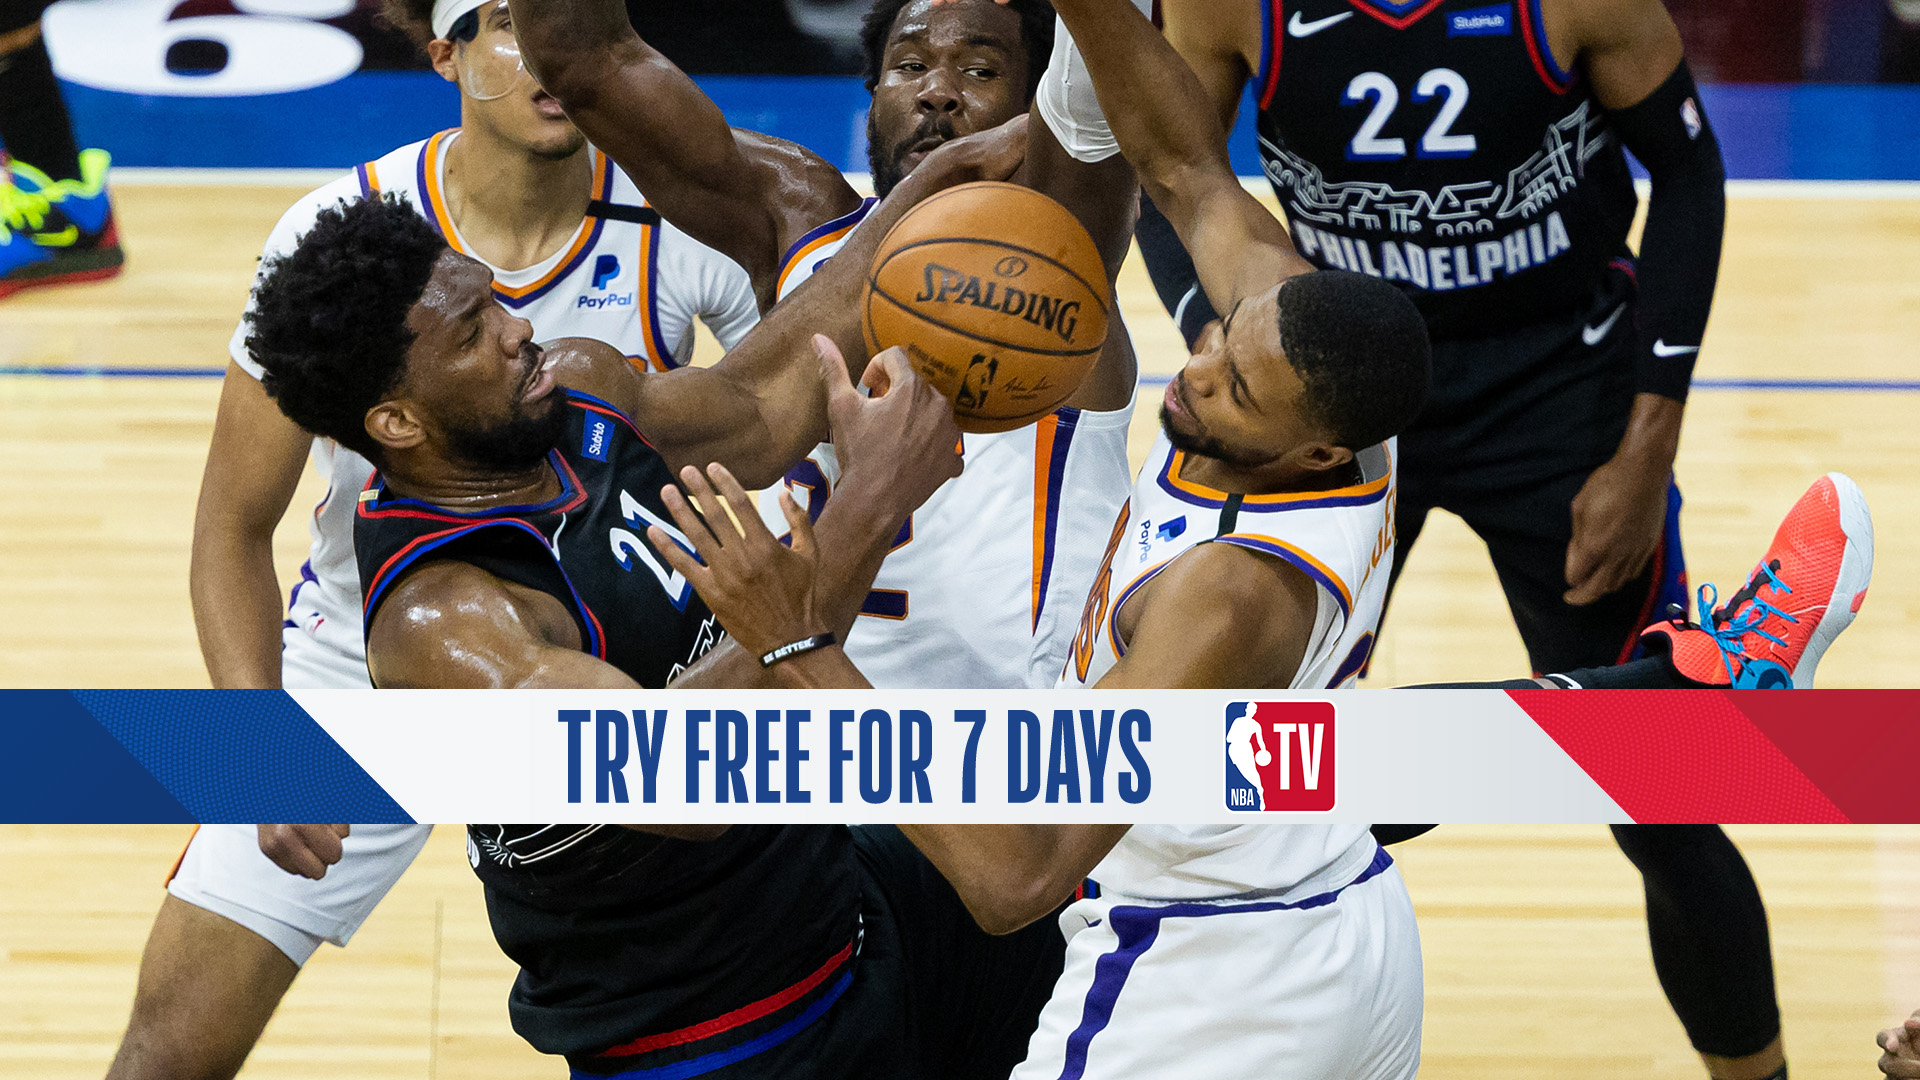 Heavyweights clash as Suns face off against 76ers